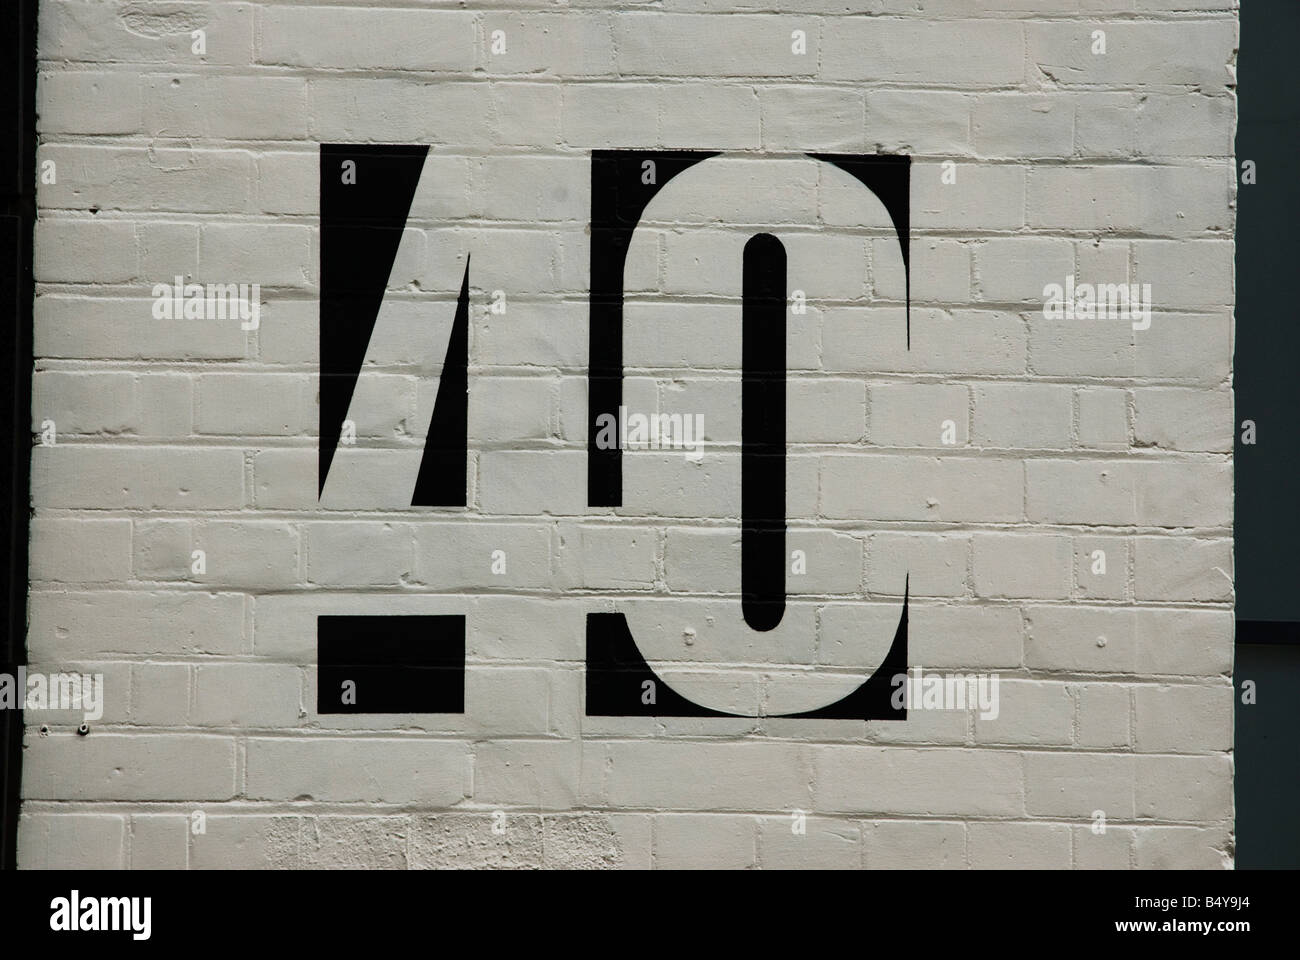 Number 40 painted on a white brick wall - Stock Image